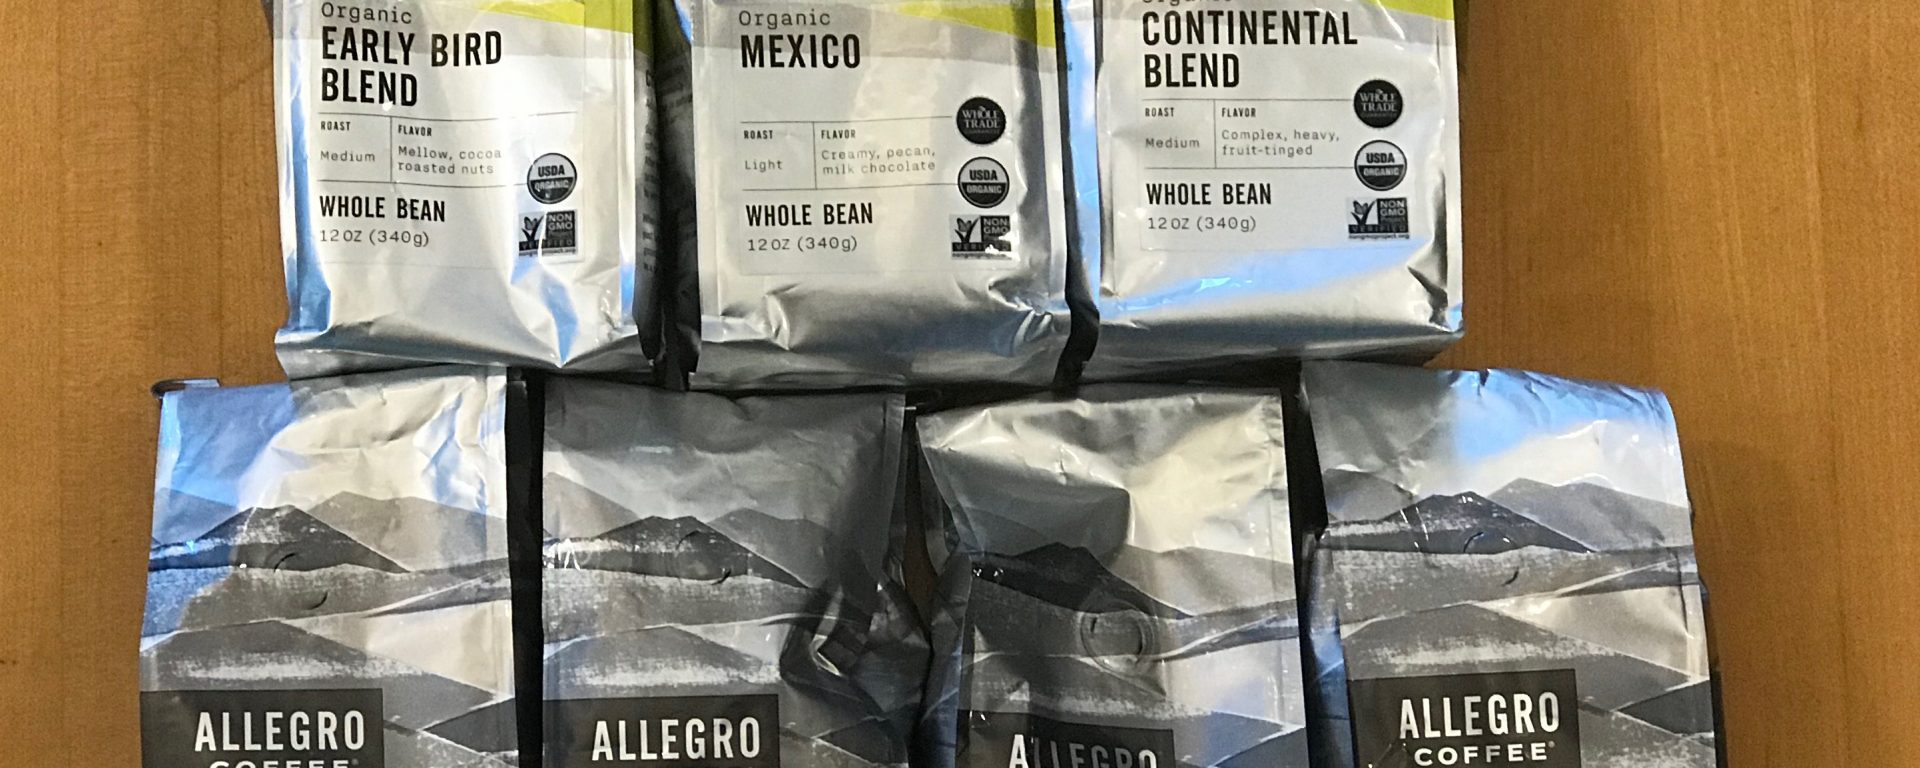 Review Of Allegro Coffee Beans Another Trip To Whole Foods